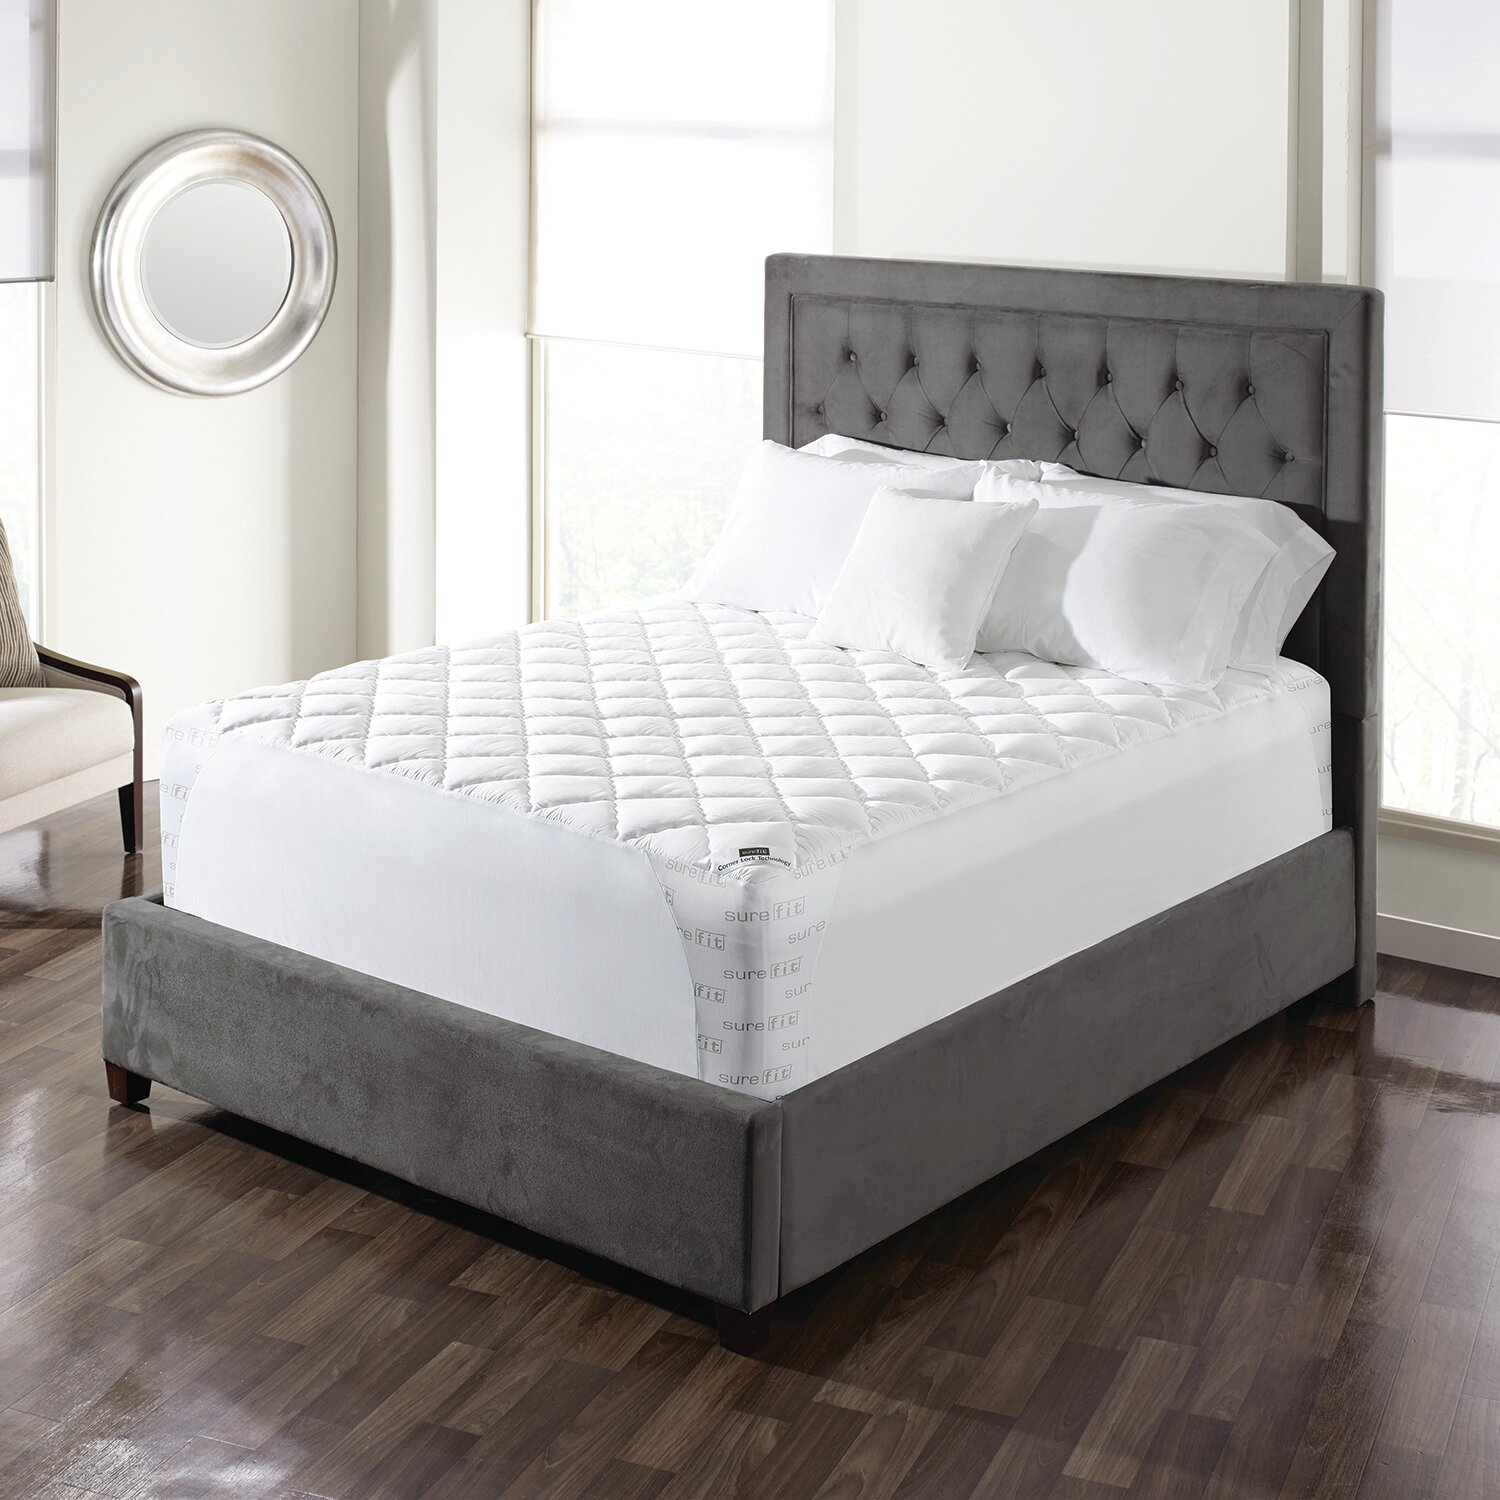 toppers brookside infused in pads foam gel p pad topper mattress twin memory xl